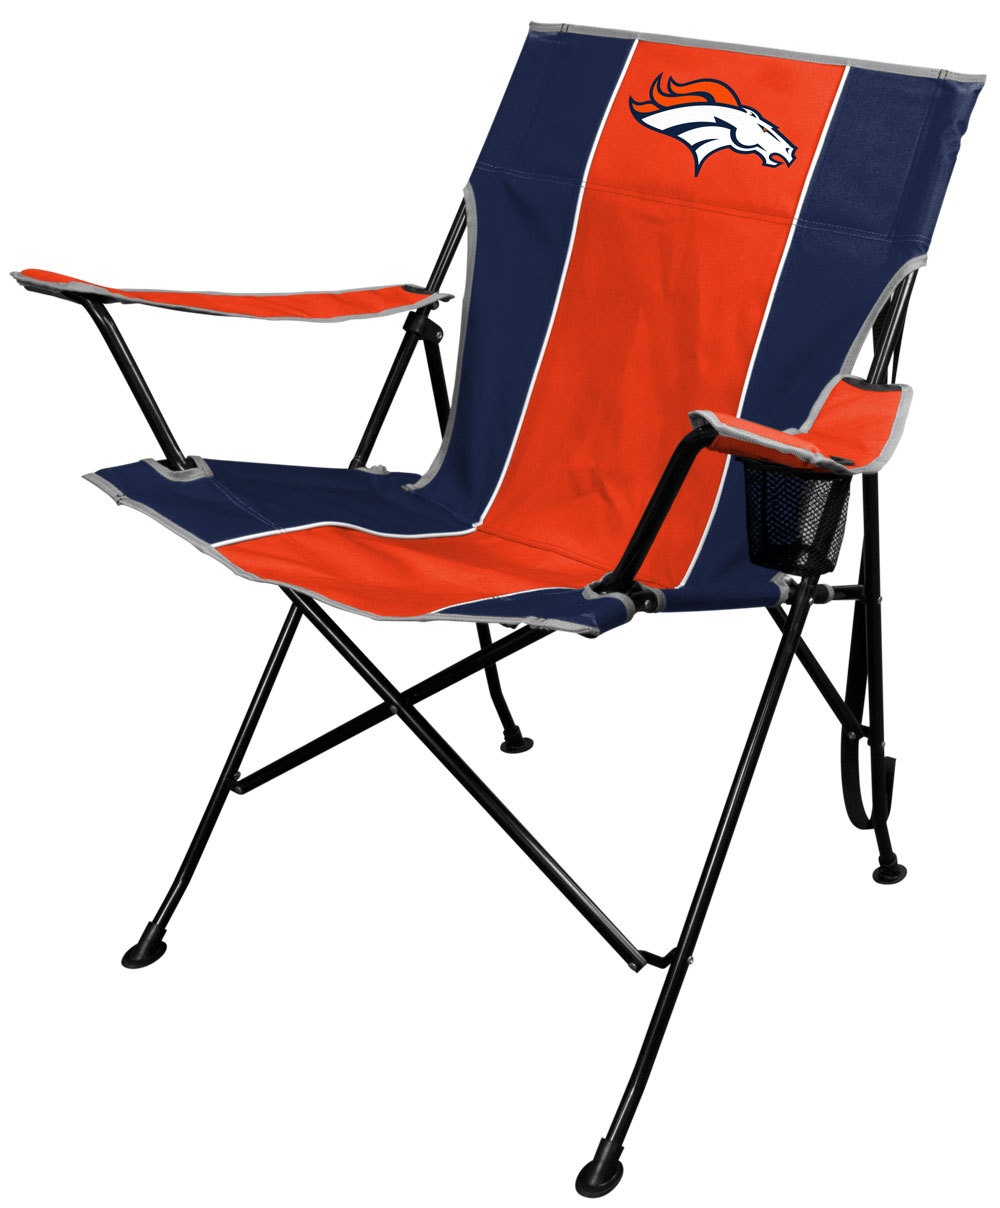 Denver Broncos Chair Tailgate**Free Shipping** - $42.34